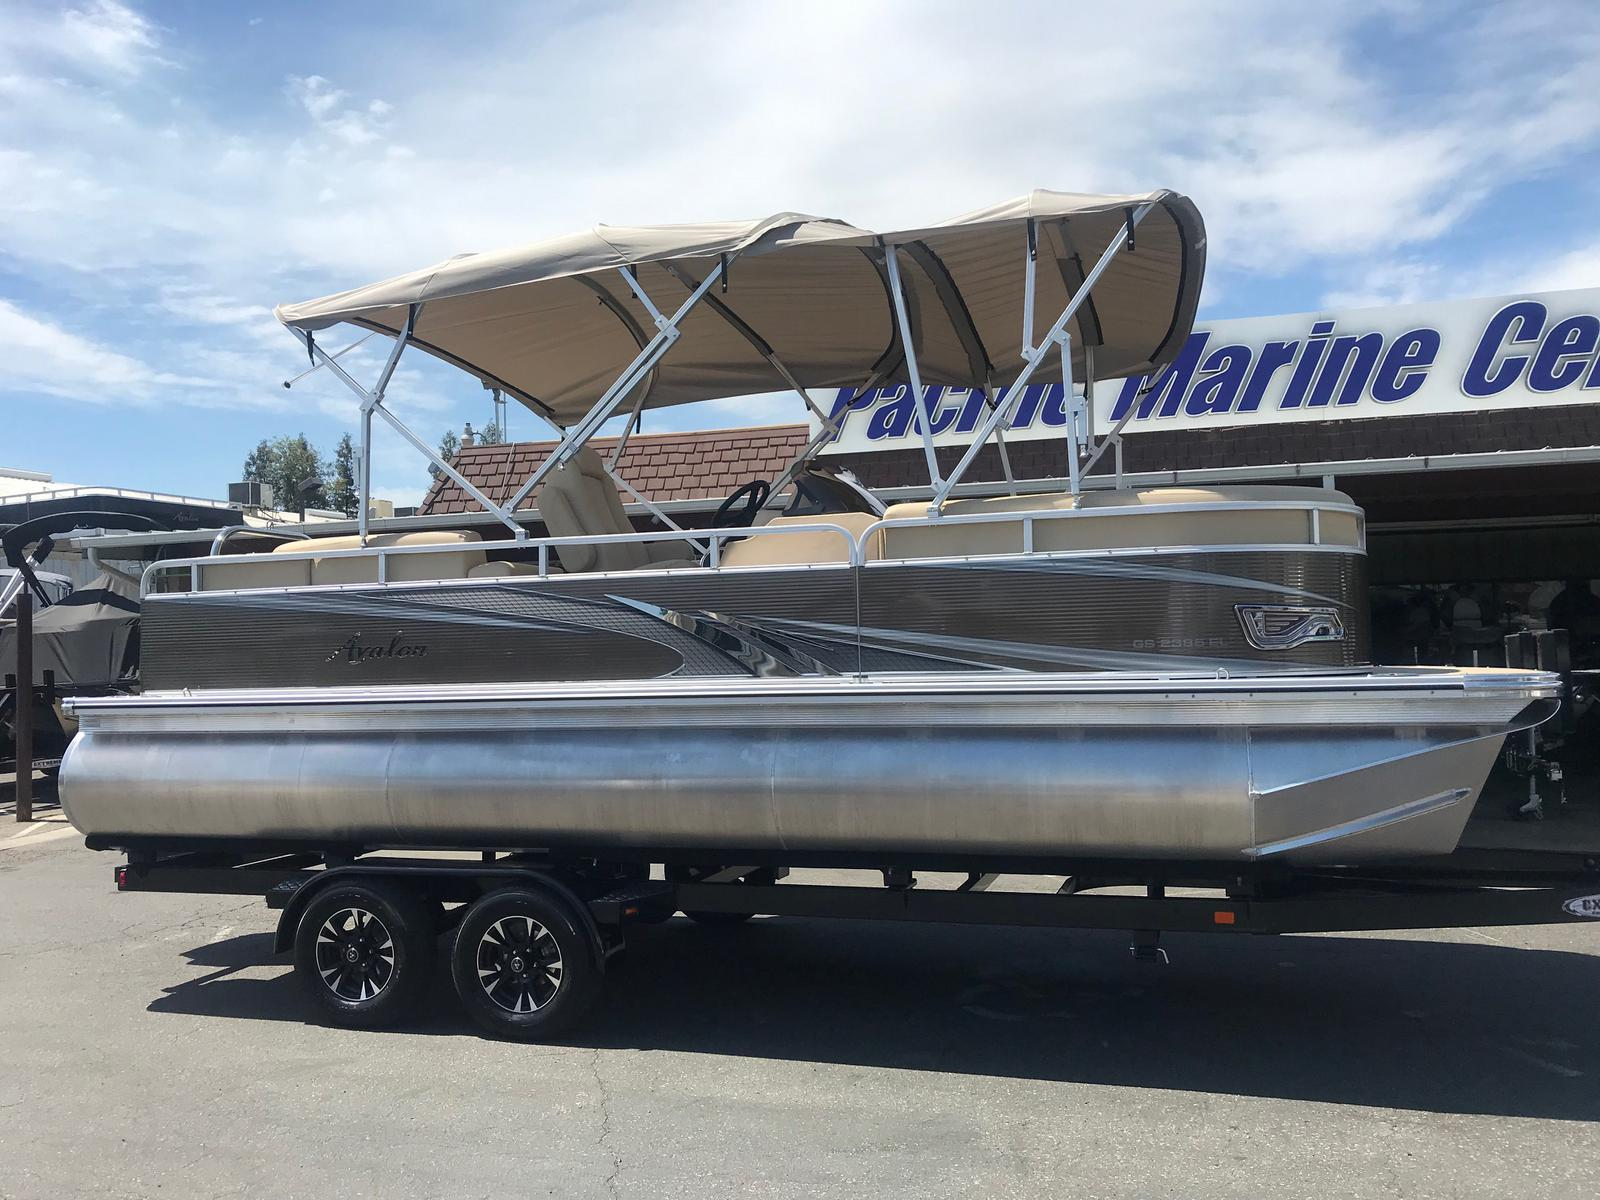 Avalon GS Elite Windshield 23' w/ 150HP